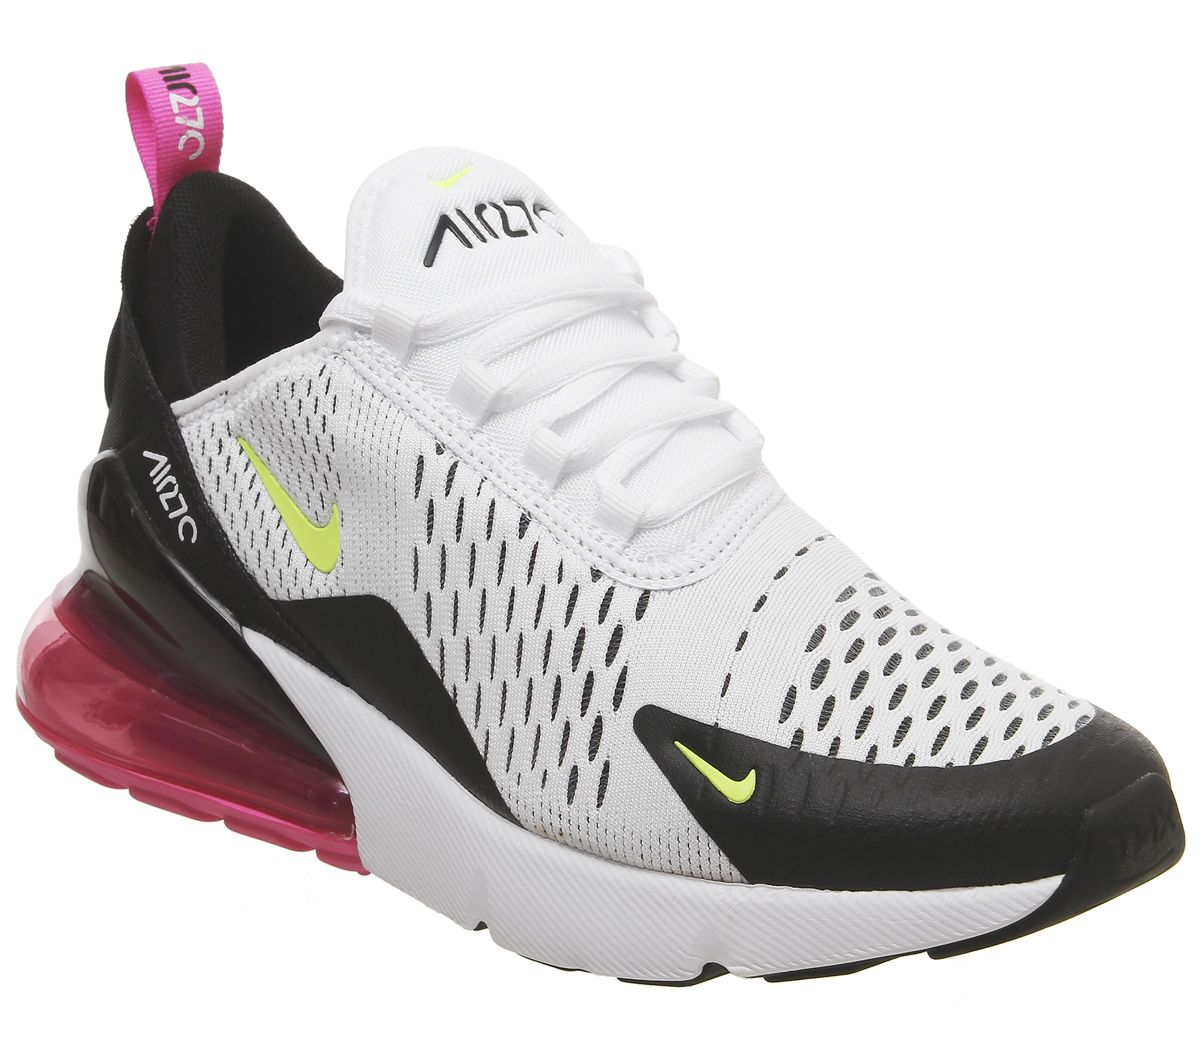 best service d4910 91f35 Nike Air Max 270 Gs Trainers White Volt Black Laser Fuchsia ...